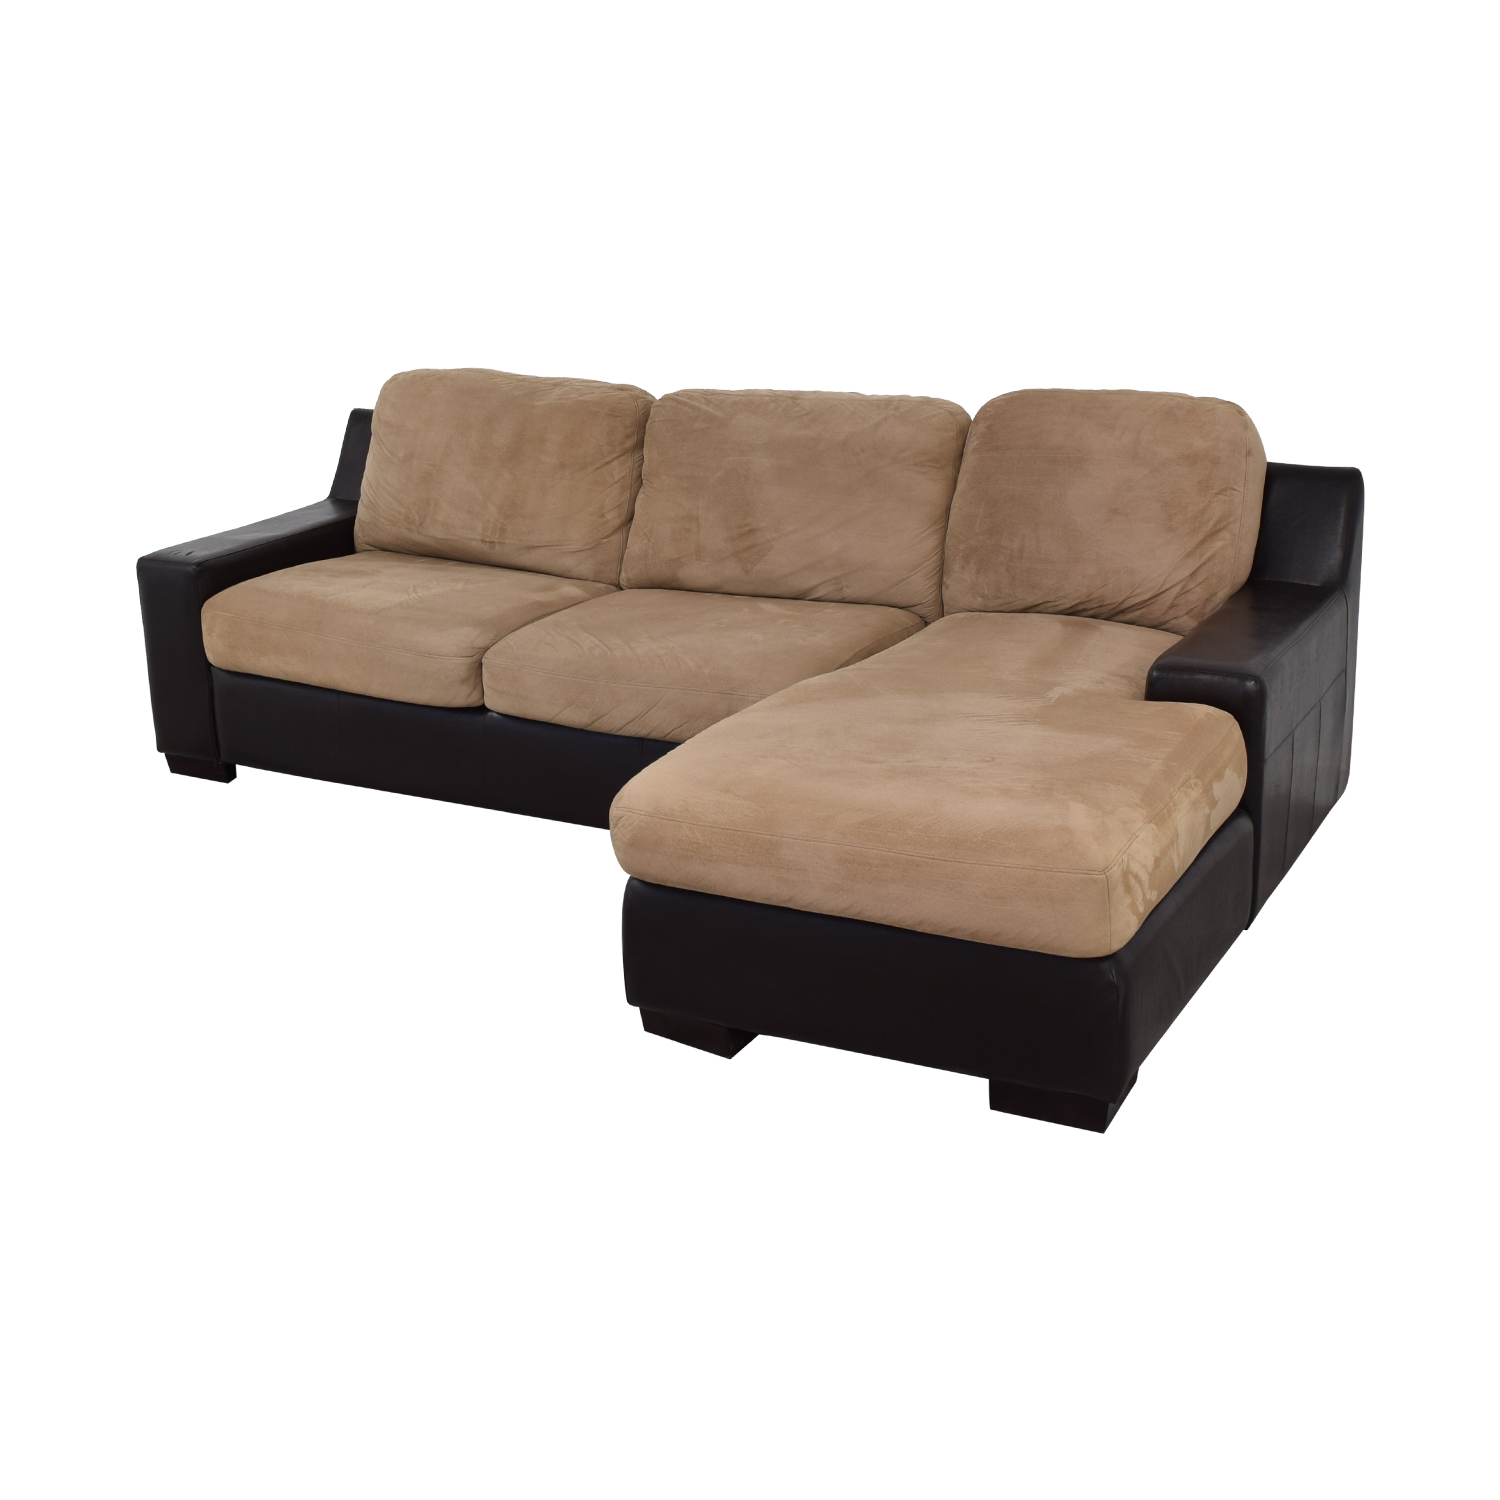 85 off wayfair red barrel studio swinyer two toned sectional sofas